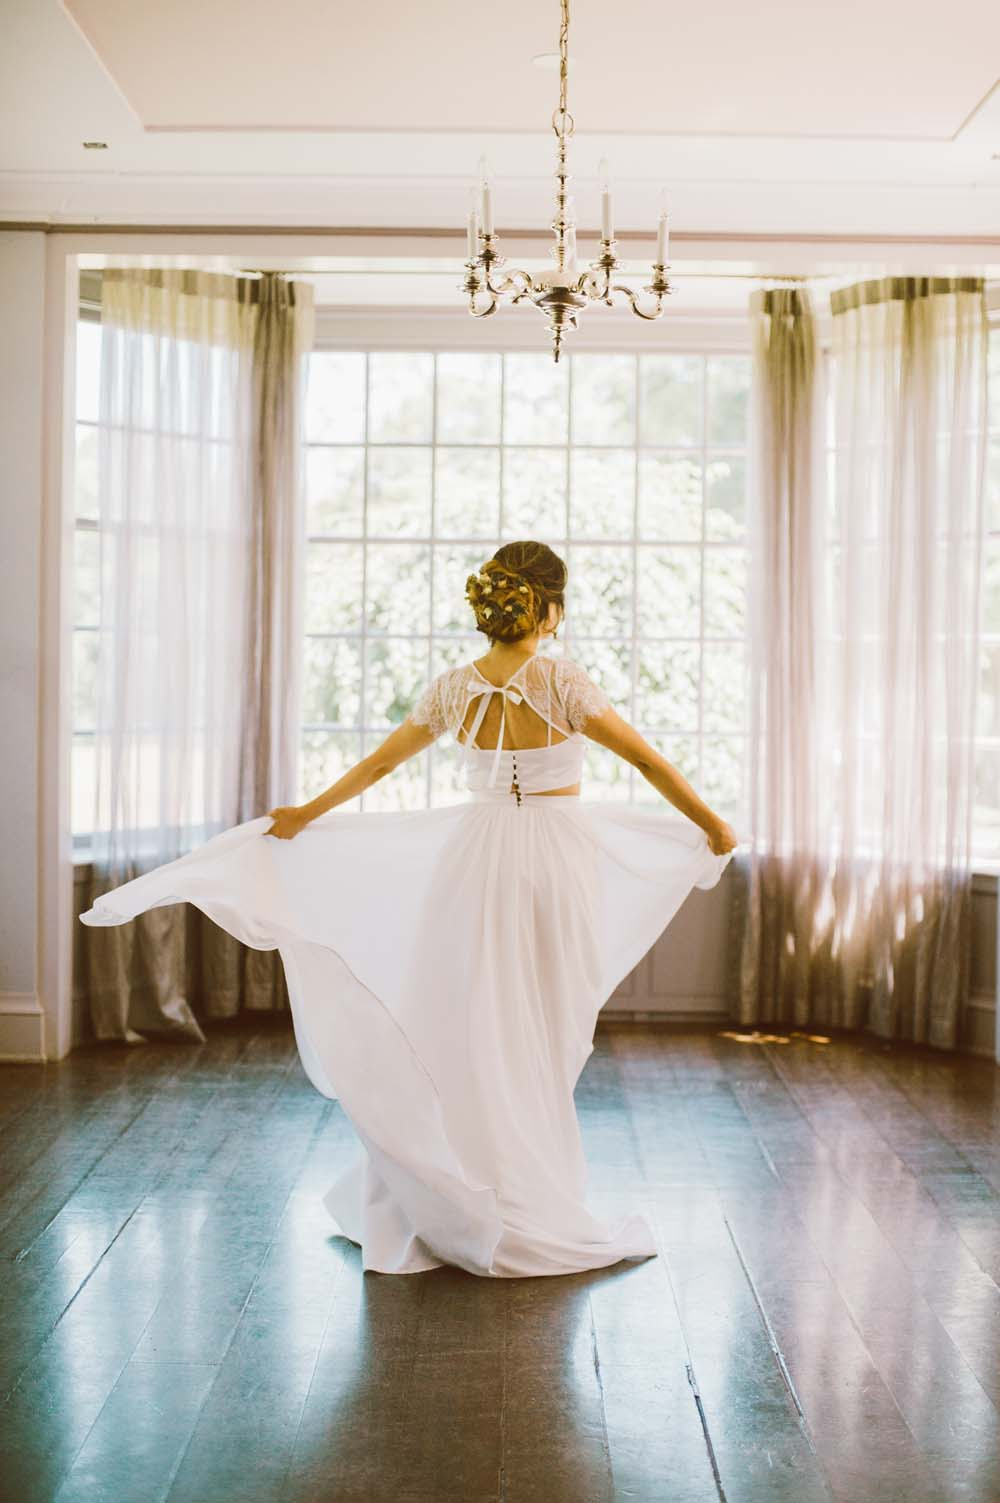 Modern Autumn Botanical Wedding Inspo - Gown from behind